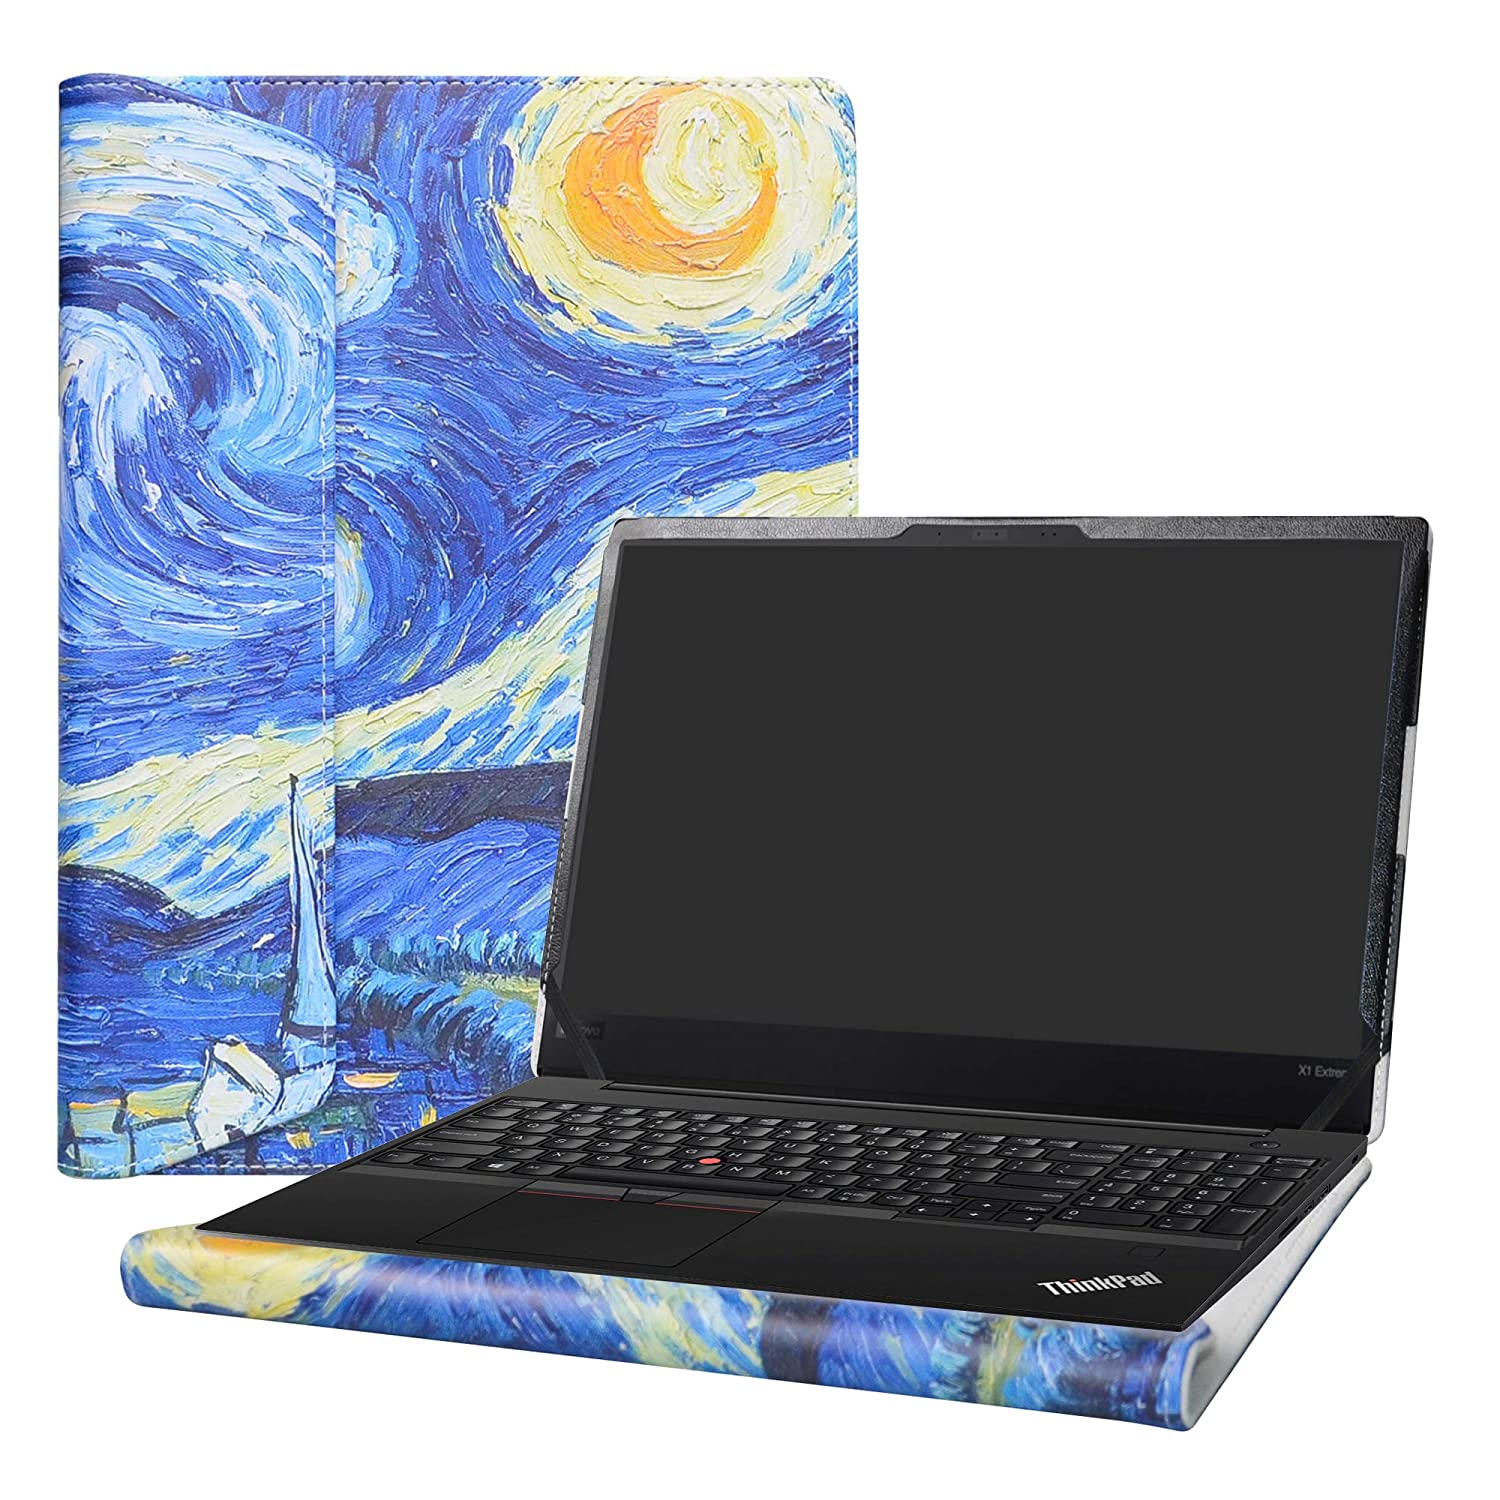 "Alapmk Protective Case Cover for 15.6"" Lenovo THINKPAD X1 Extreme/Lenovo THINKPAD P1 Series Laptop[Warning:Not fit Lenovo THINKPAD X1 Carbon/X1 Yoga],Starry Night"